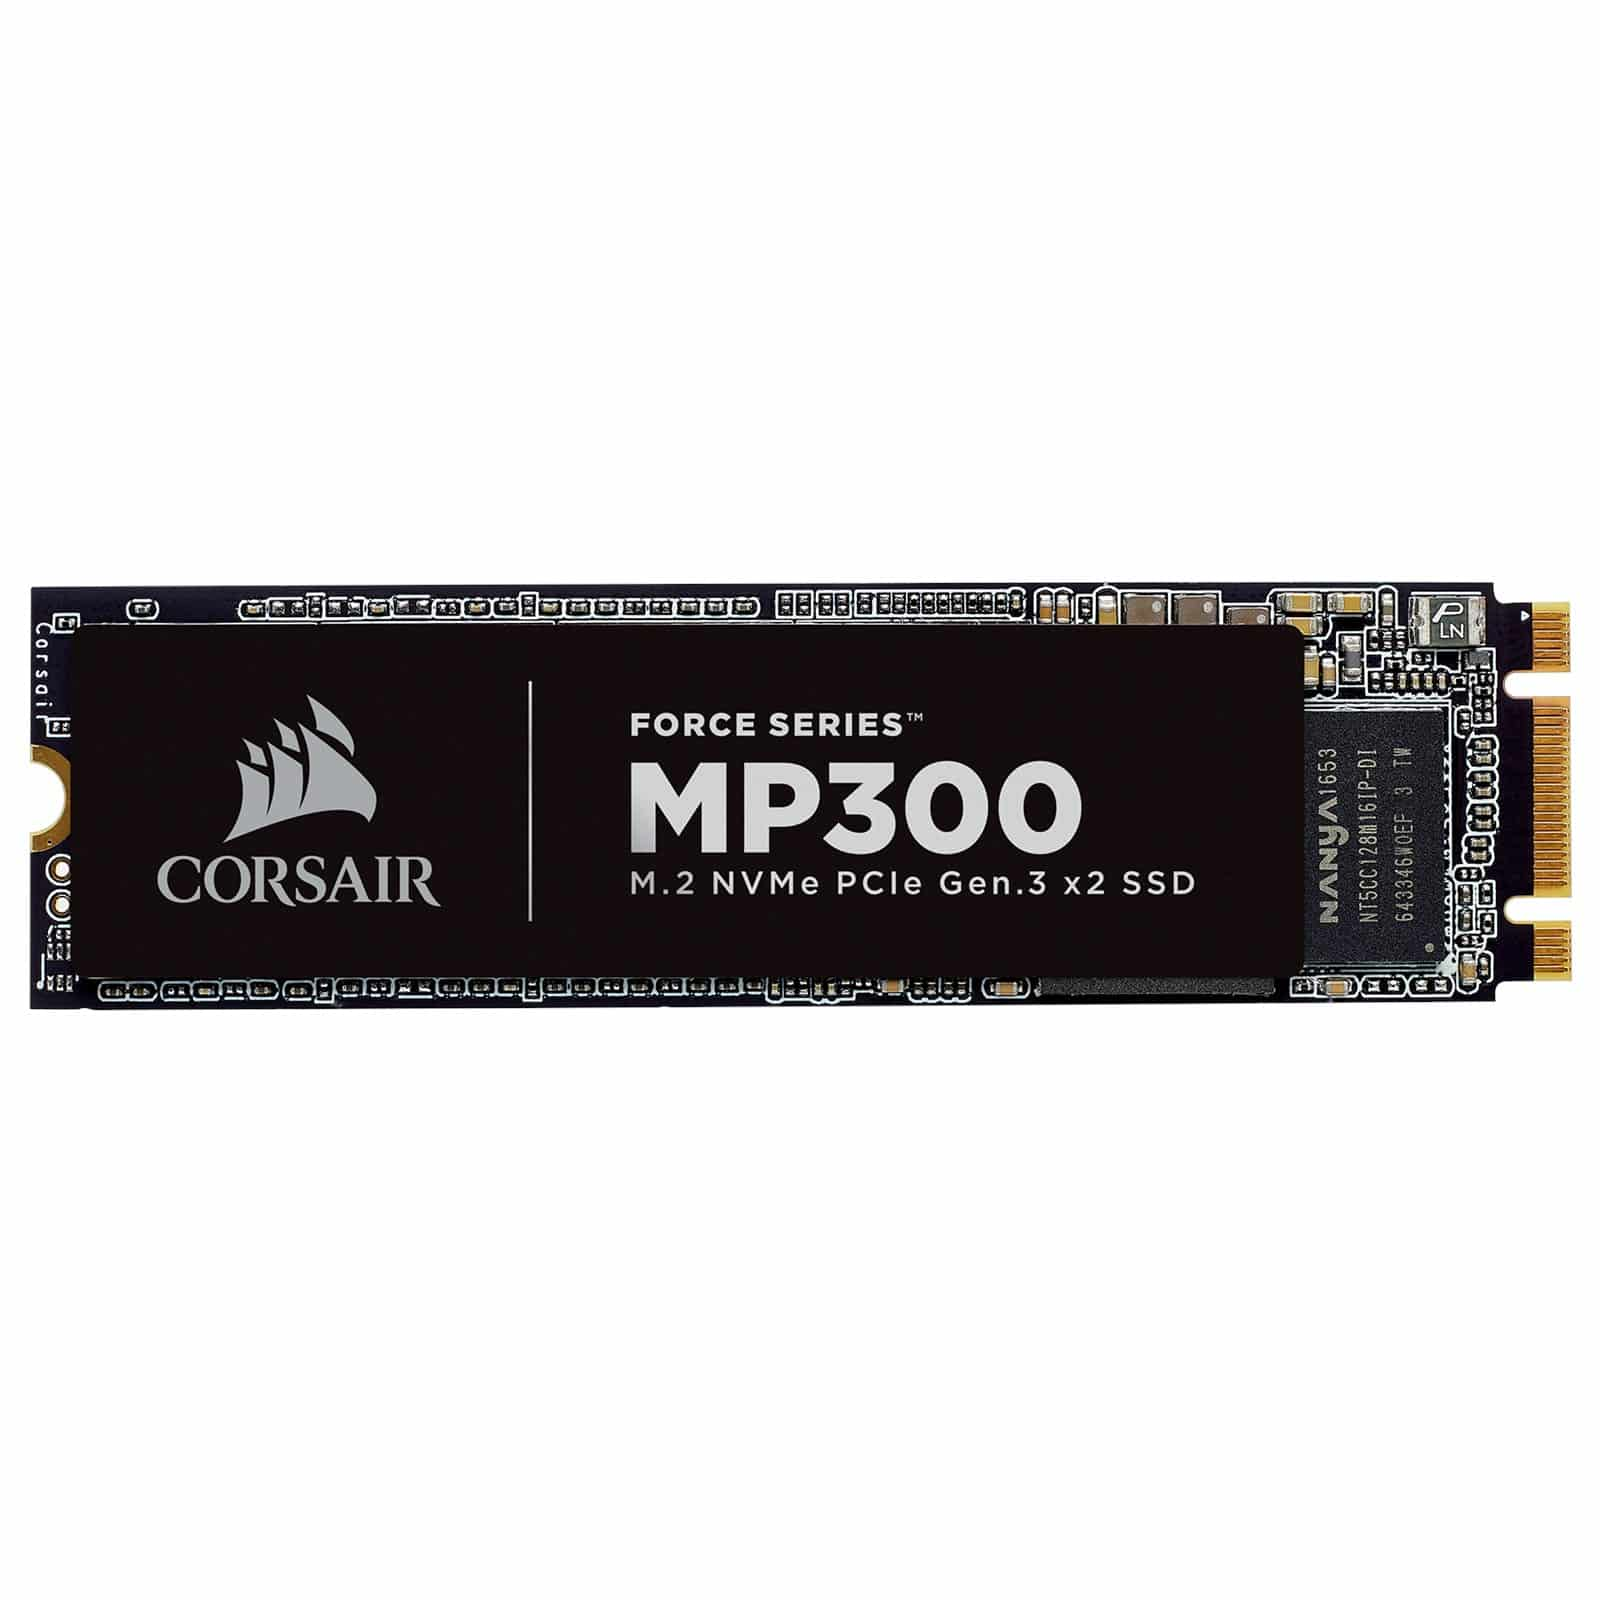 Corsair 480GB M.2 NVMe MP300